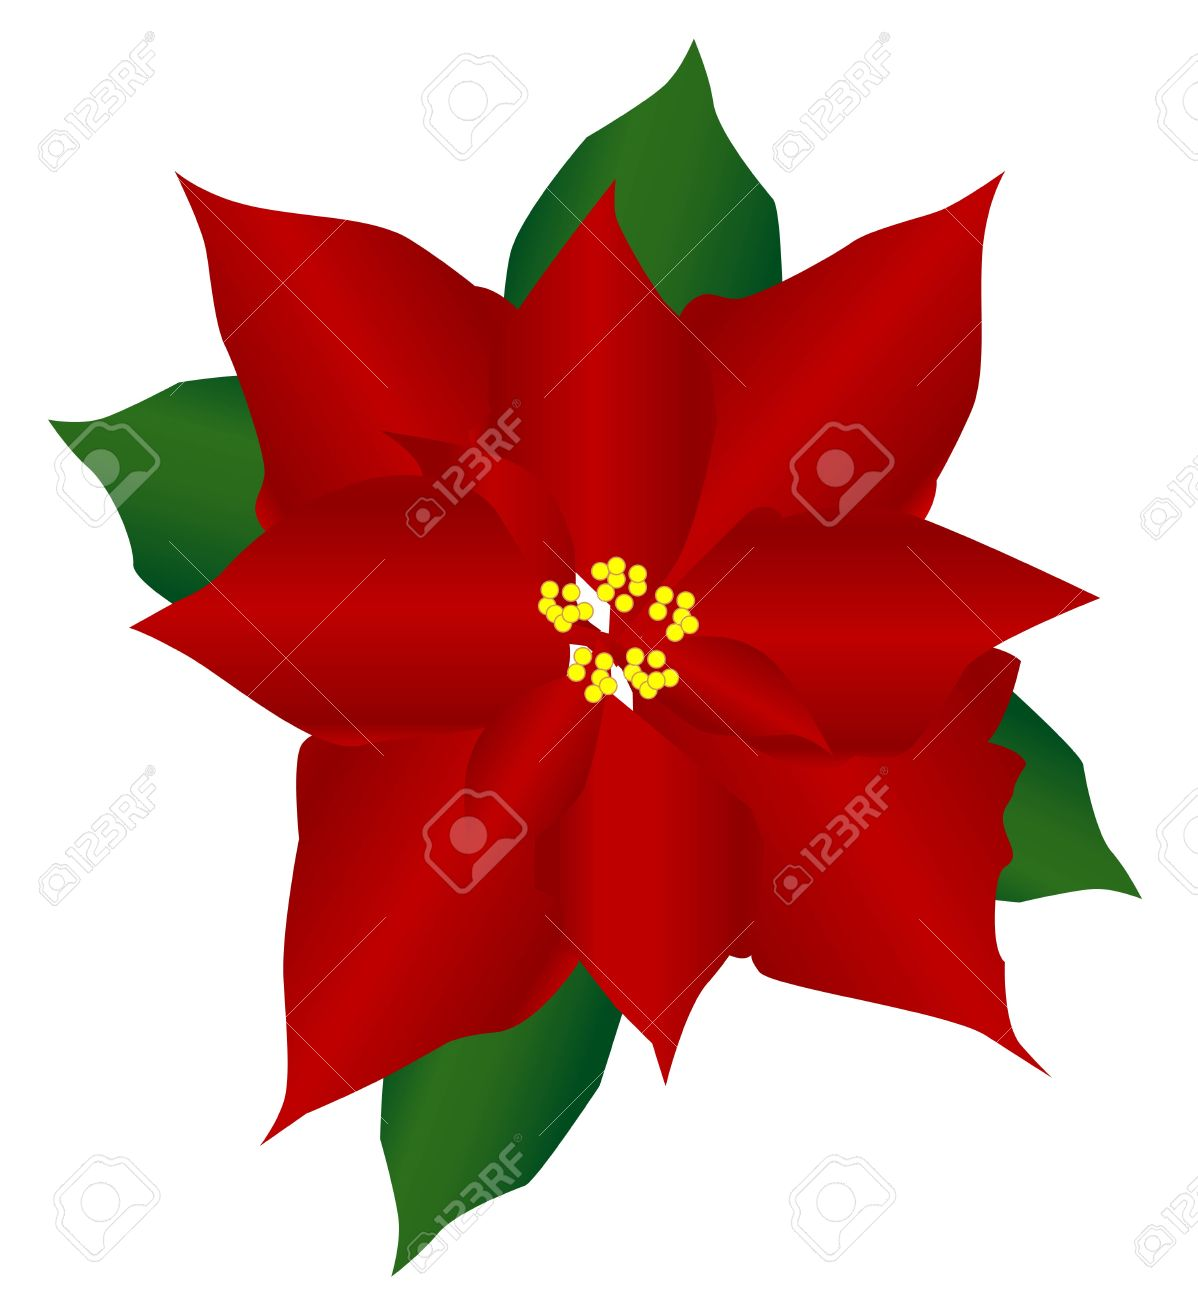 Clip Art Poinsettia Clipart poinsettia royalty free cliparts vectors and stock illustration vector 5790618